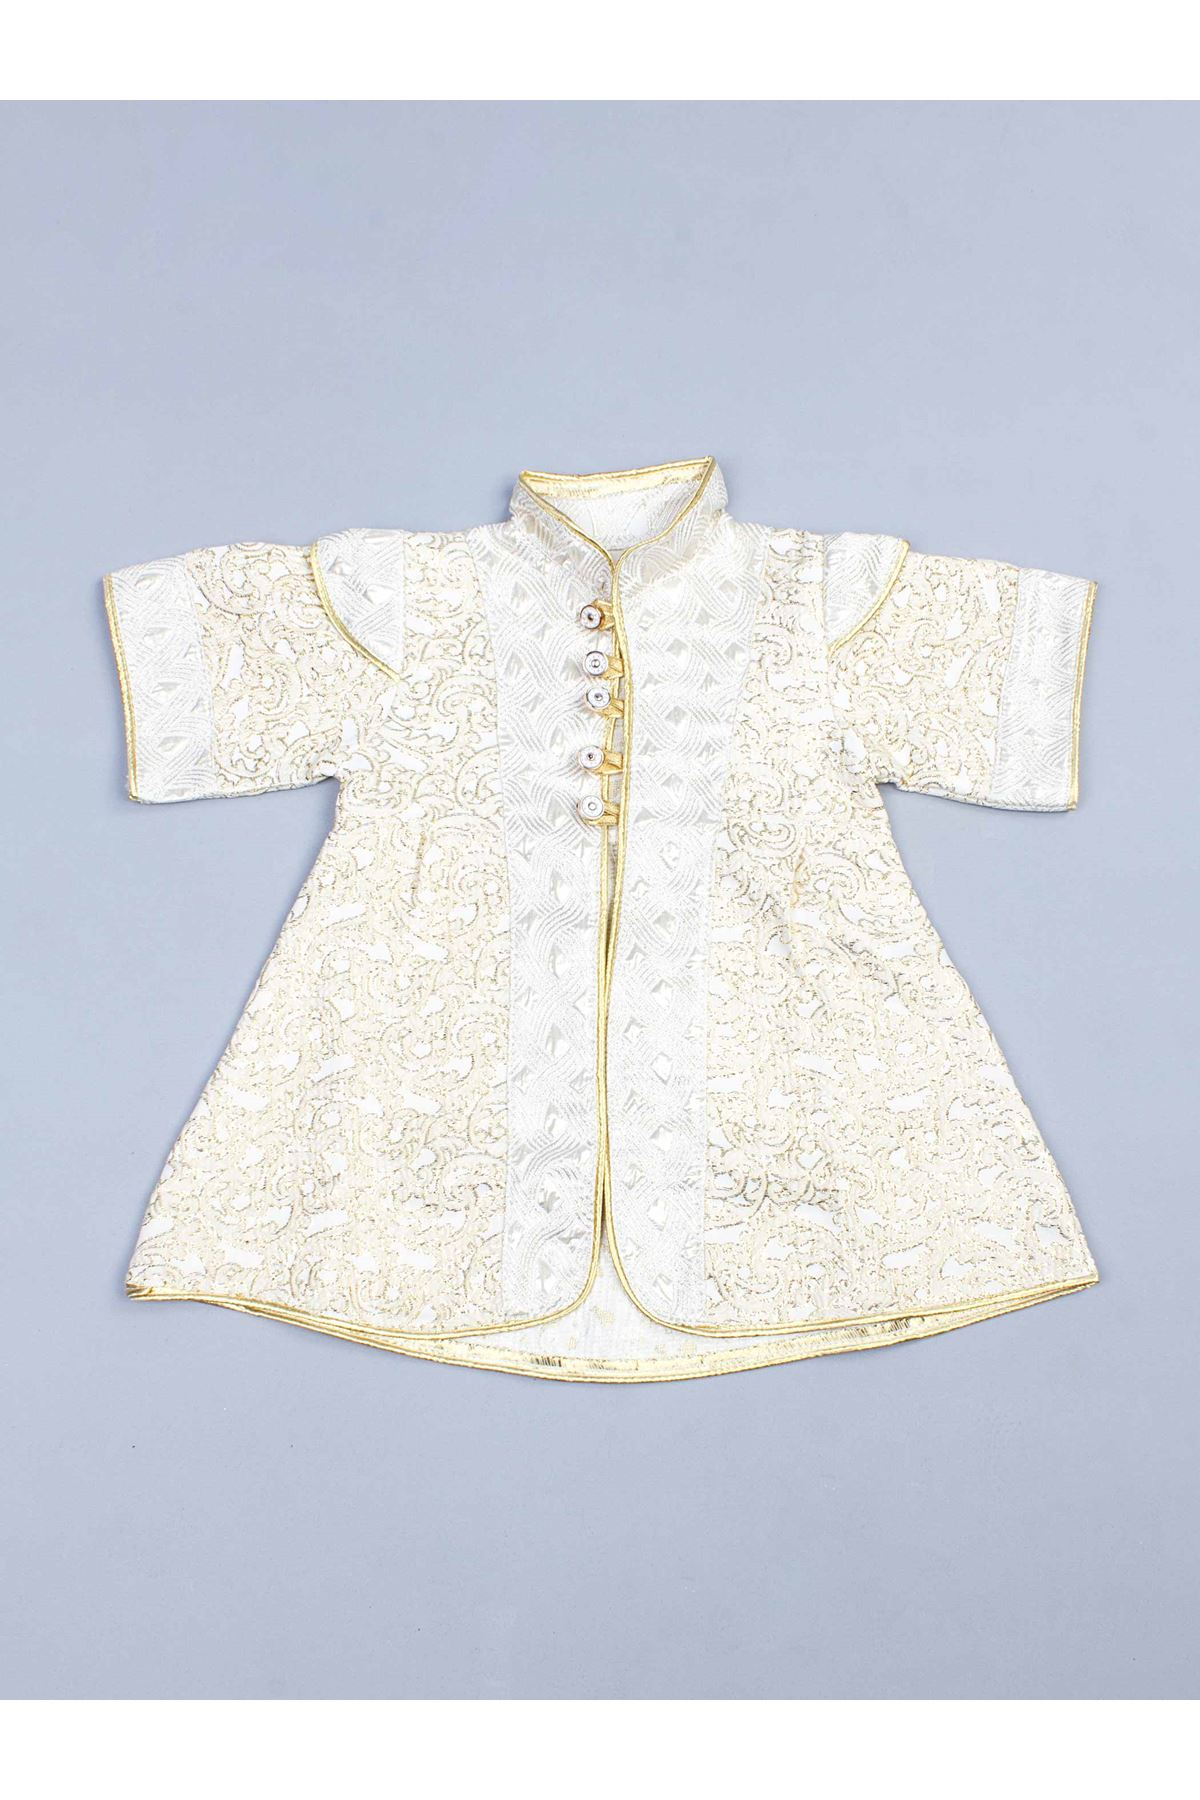 Girl Boy Baby Yellow Prince Suit Vintage Nostalgia Ottoman Prince Princess Special Occasions Stylish Babies 5-piece Clothing Mod